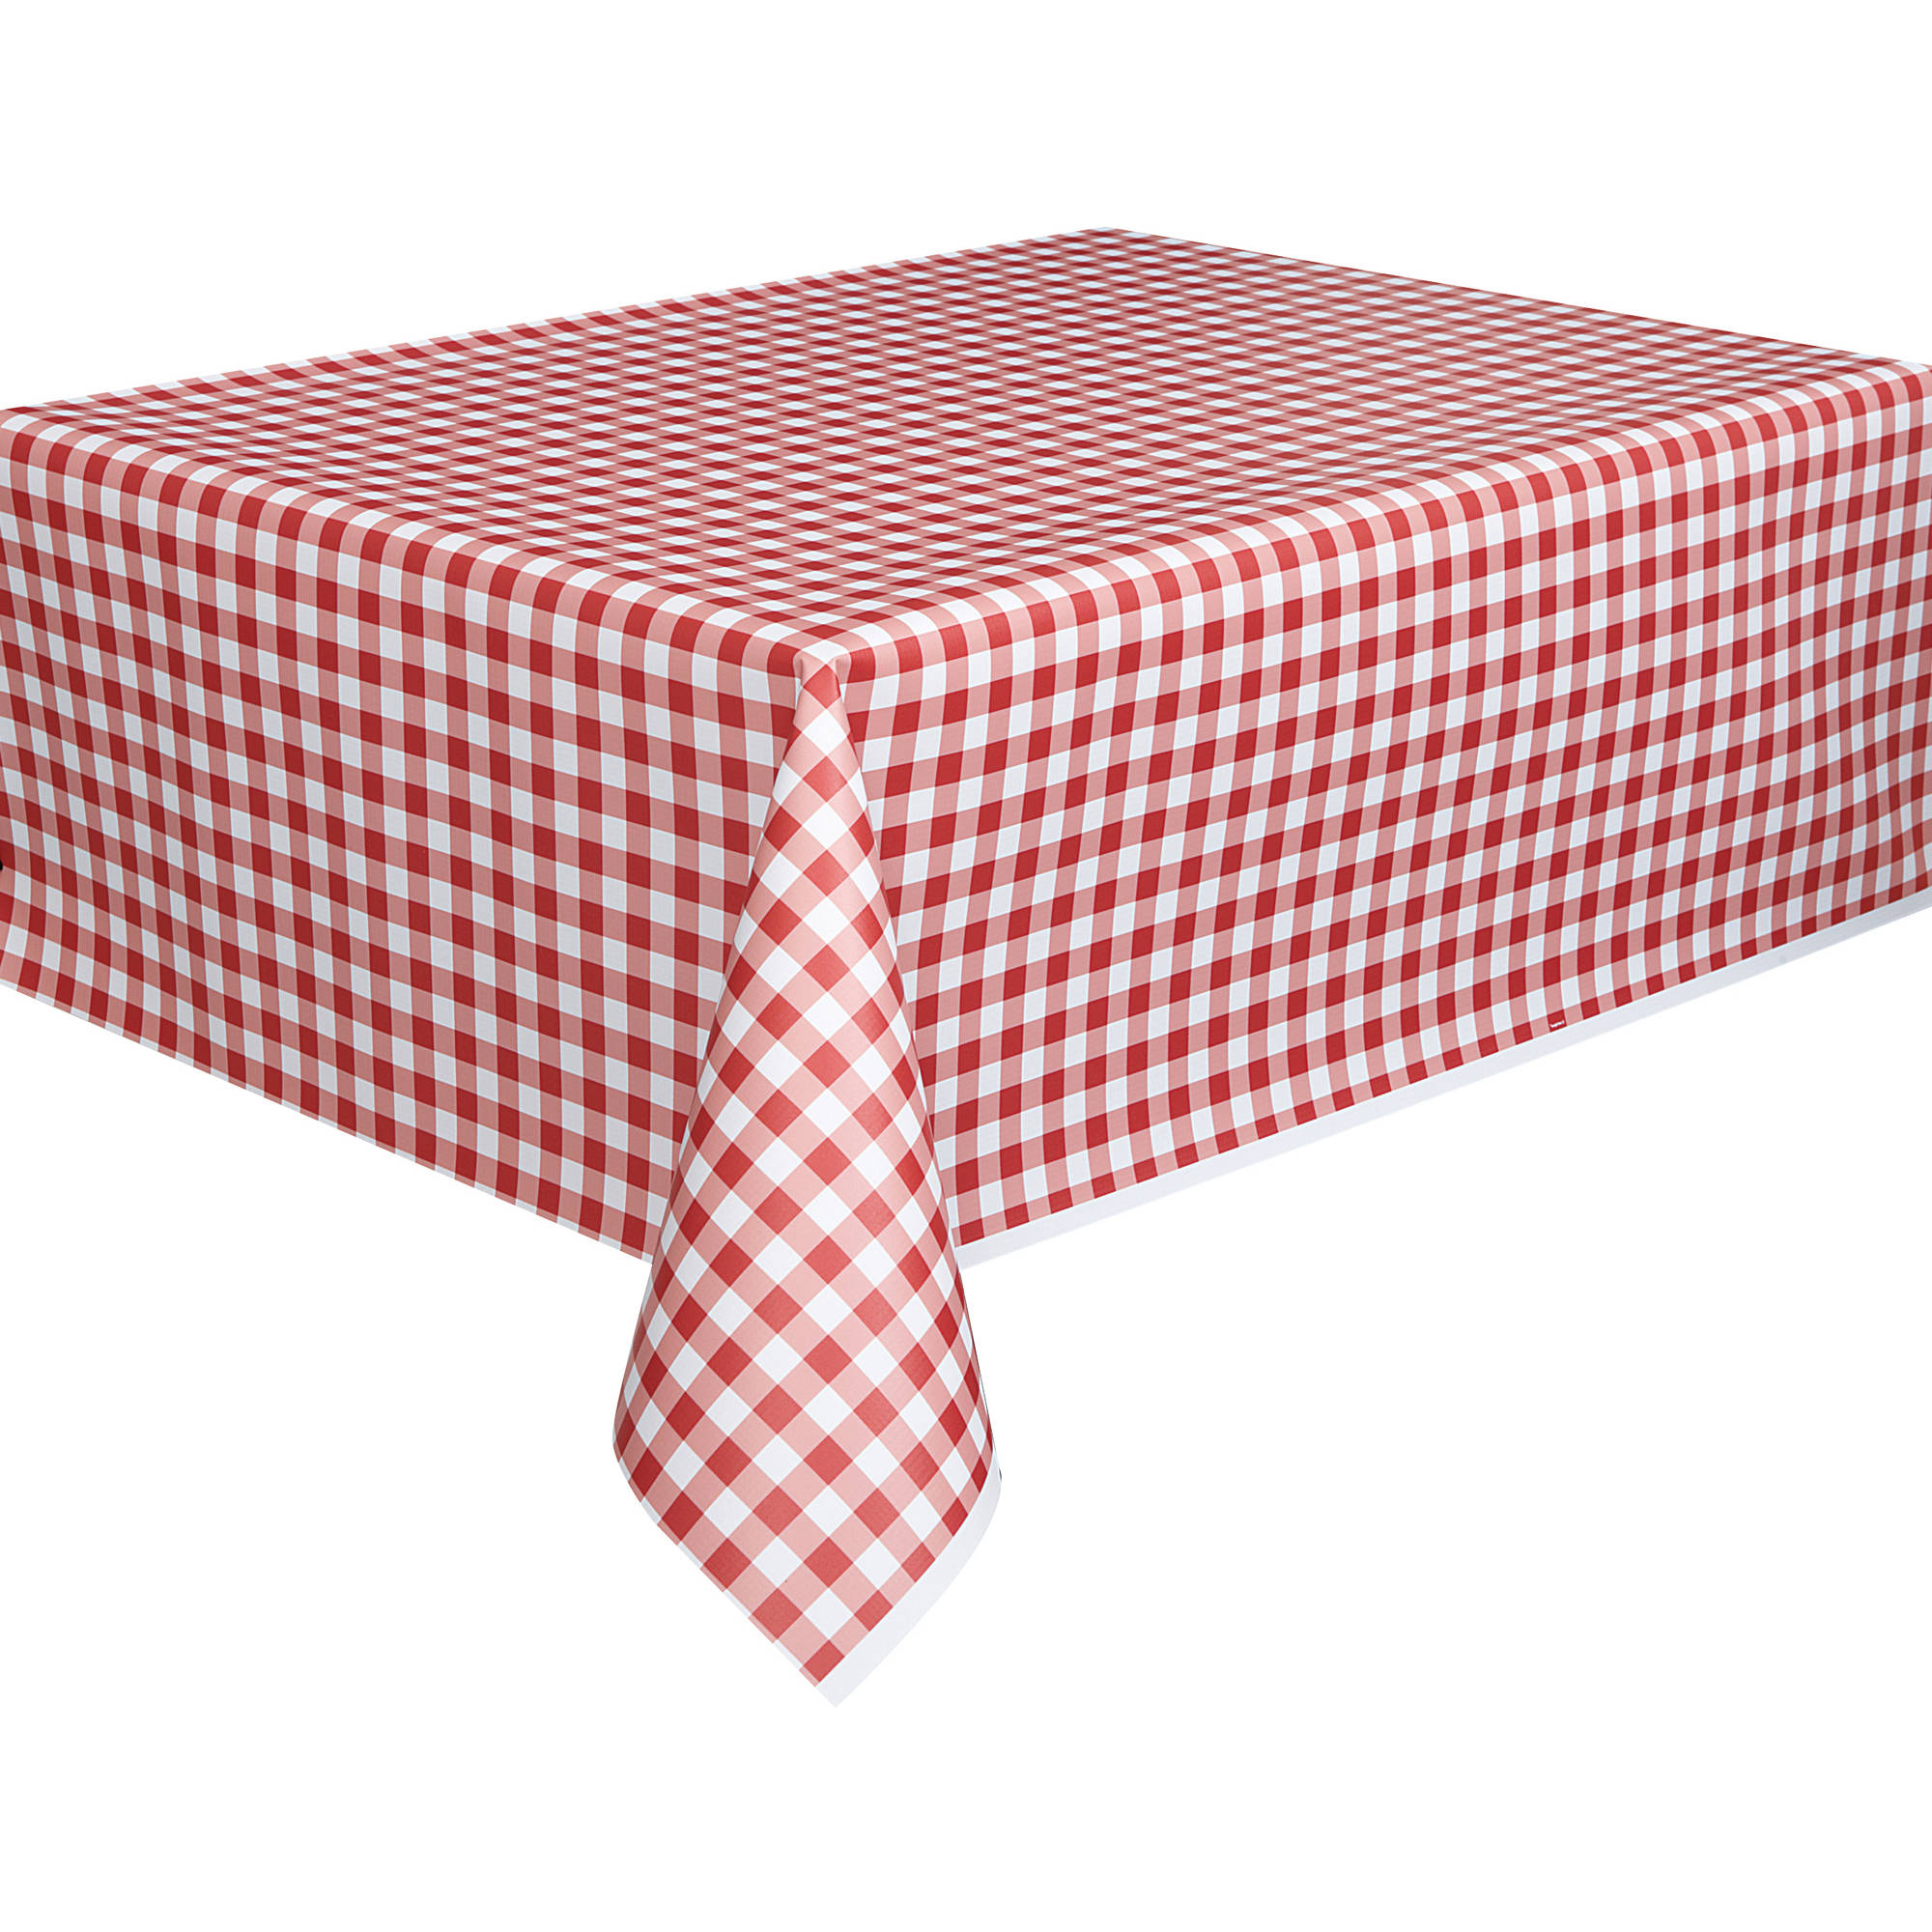 Table Cloth Tldn Red Gingham Plastic Party Tablecloth 108 X 54in Walmart